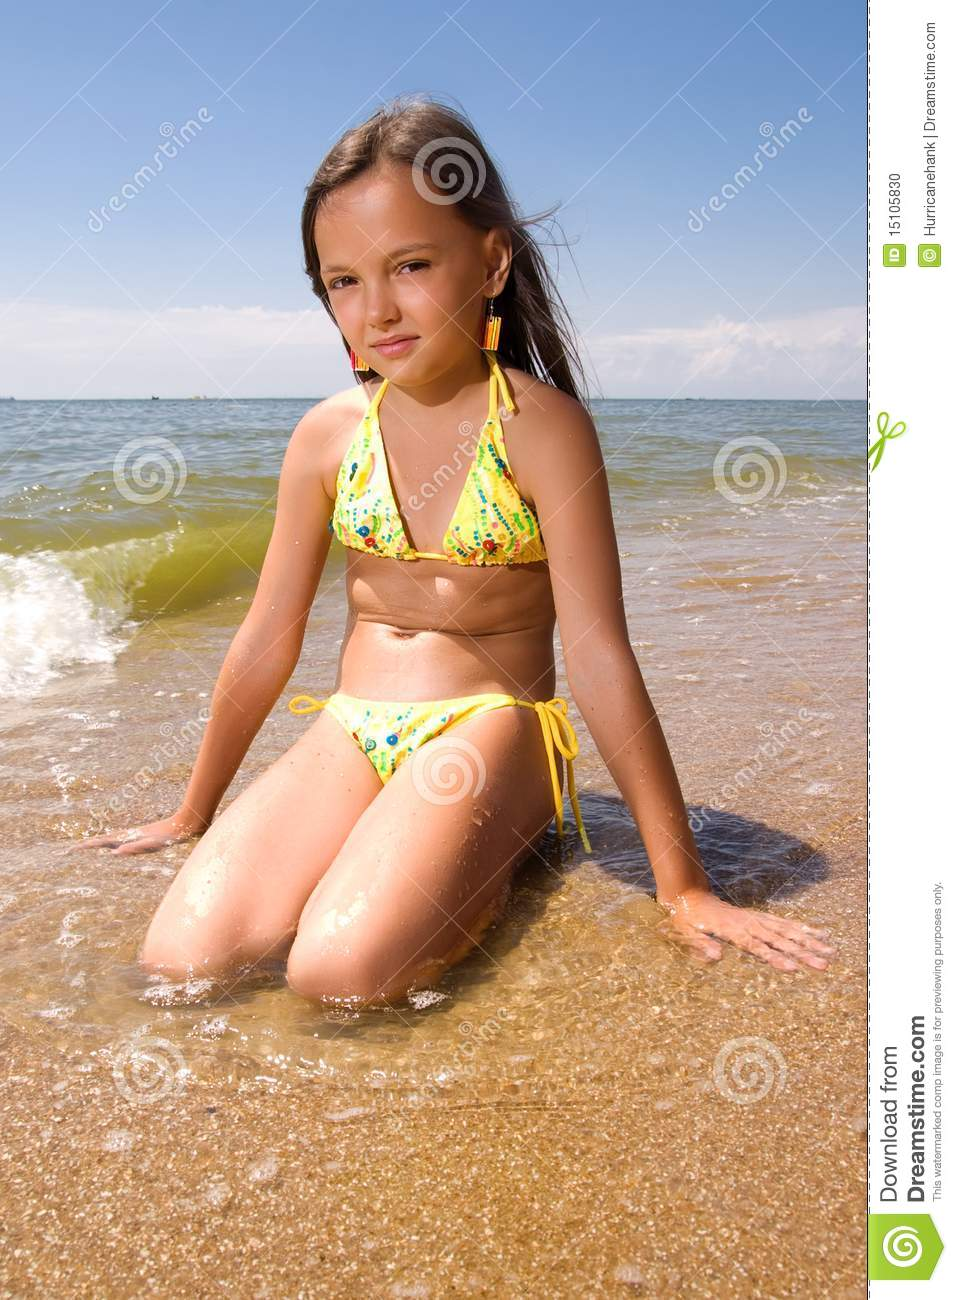 Little Girl At The Seaside Stock Photo Image 15105830